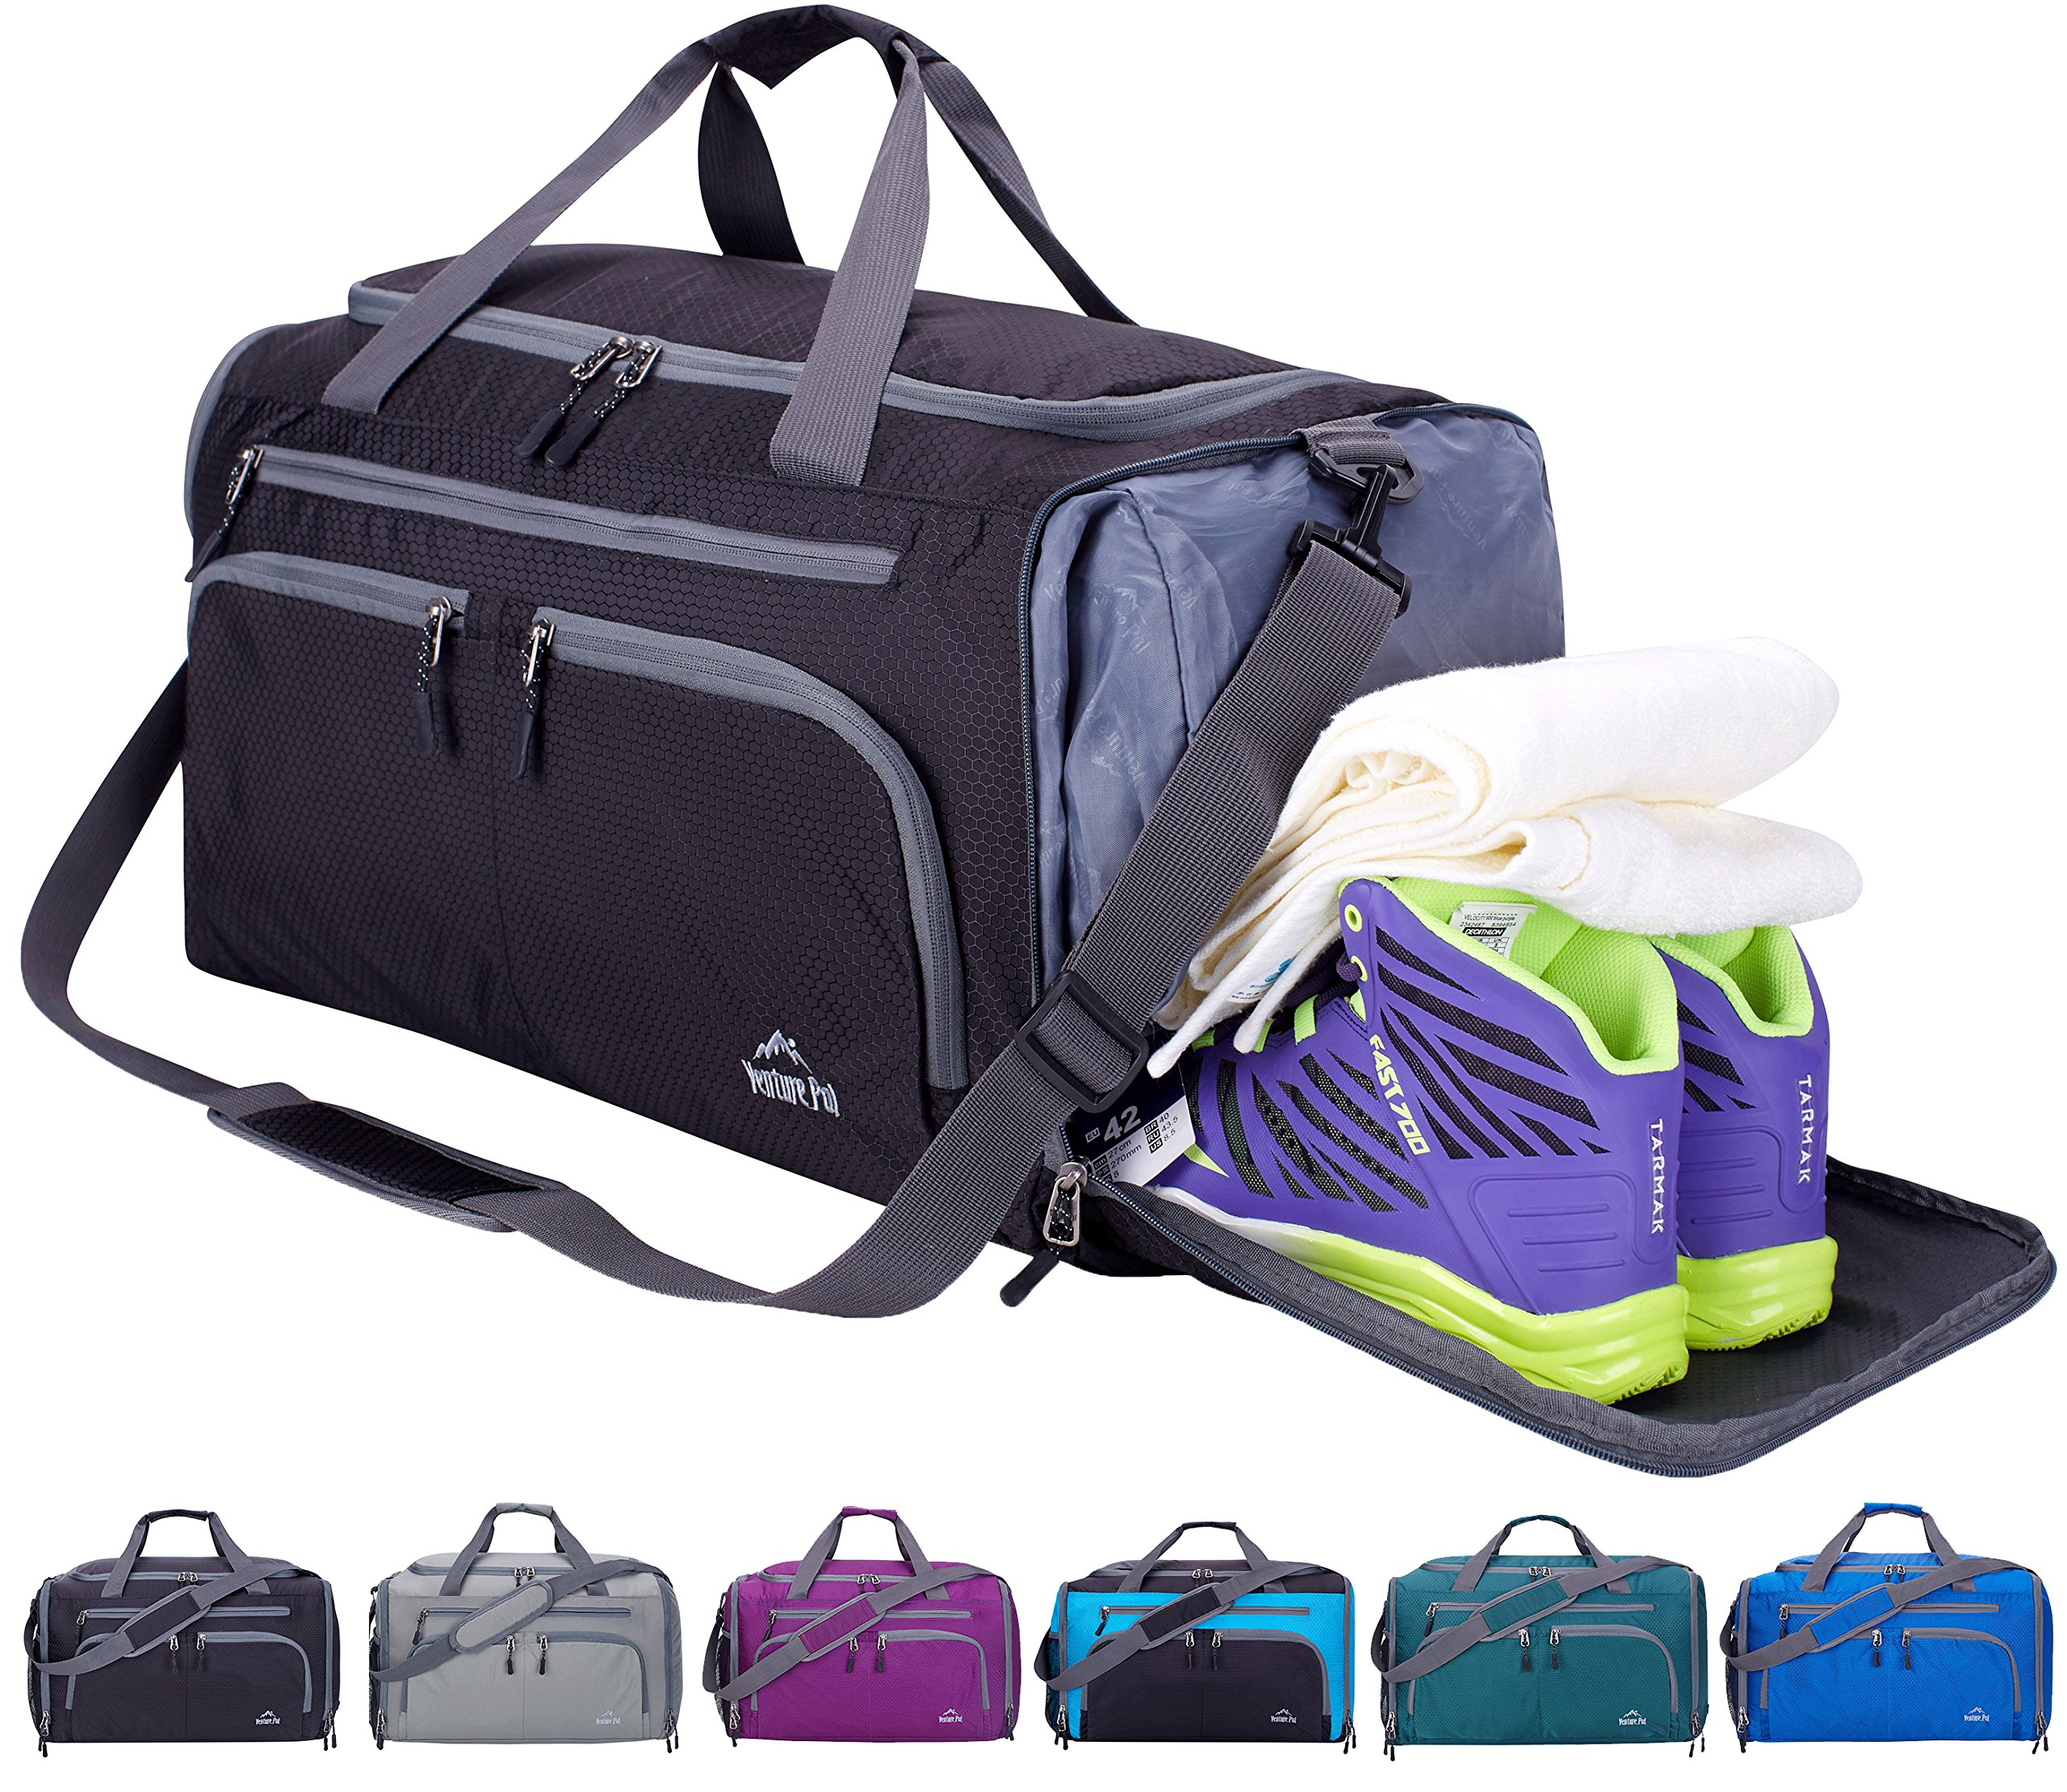 Venture Pal 20'' Packable Sports Gym Bag with Wet Pocket & Shoes Compartment Travel Duffel Bag for Men and Women-Black